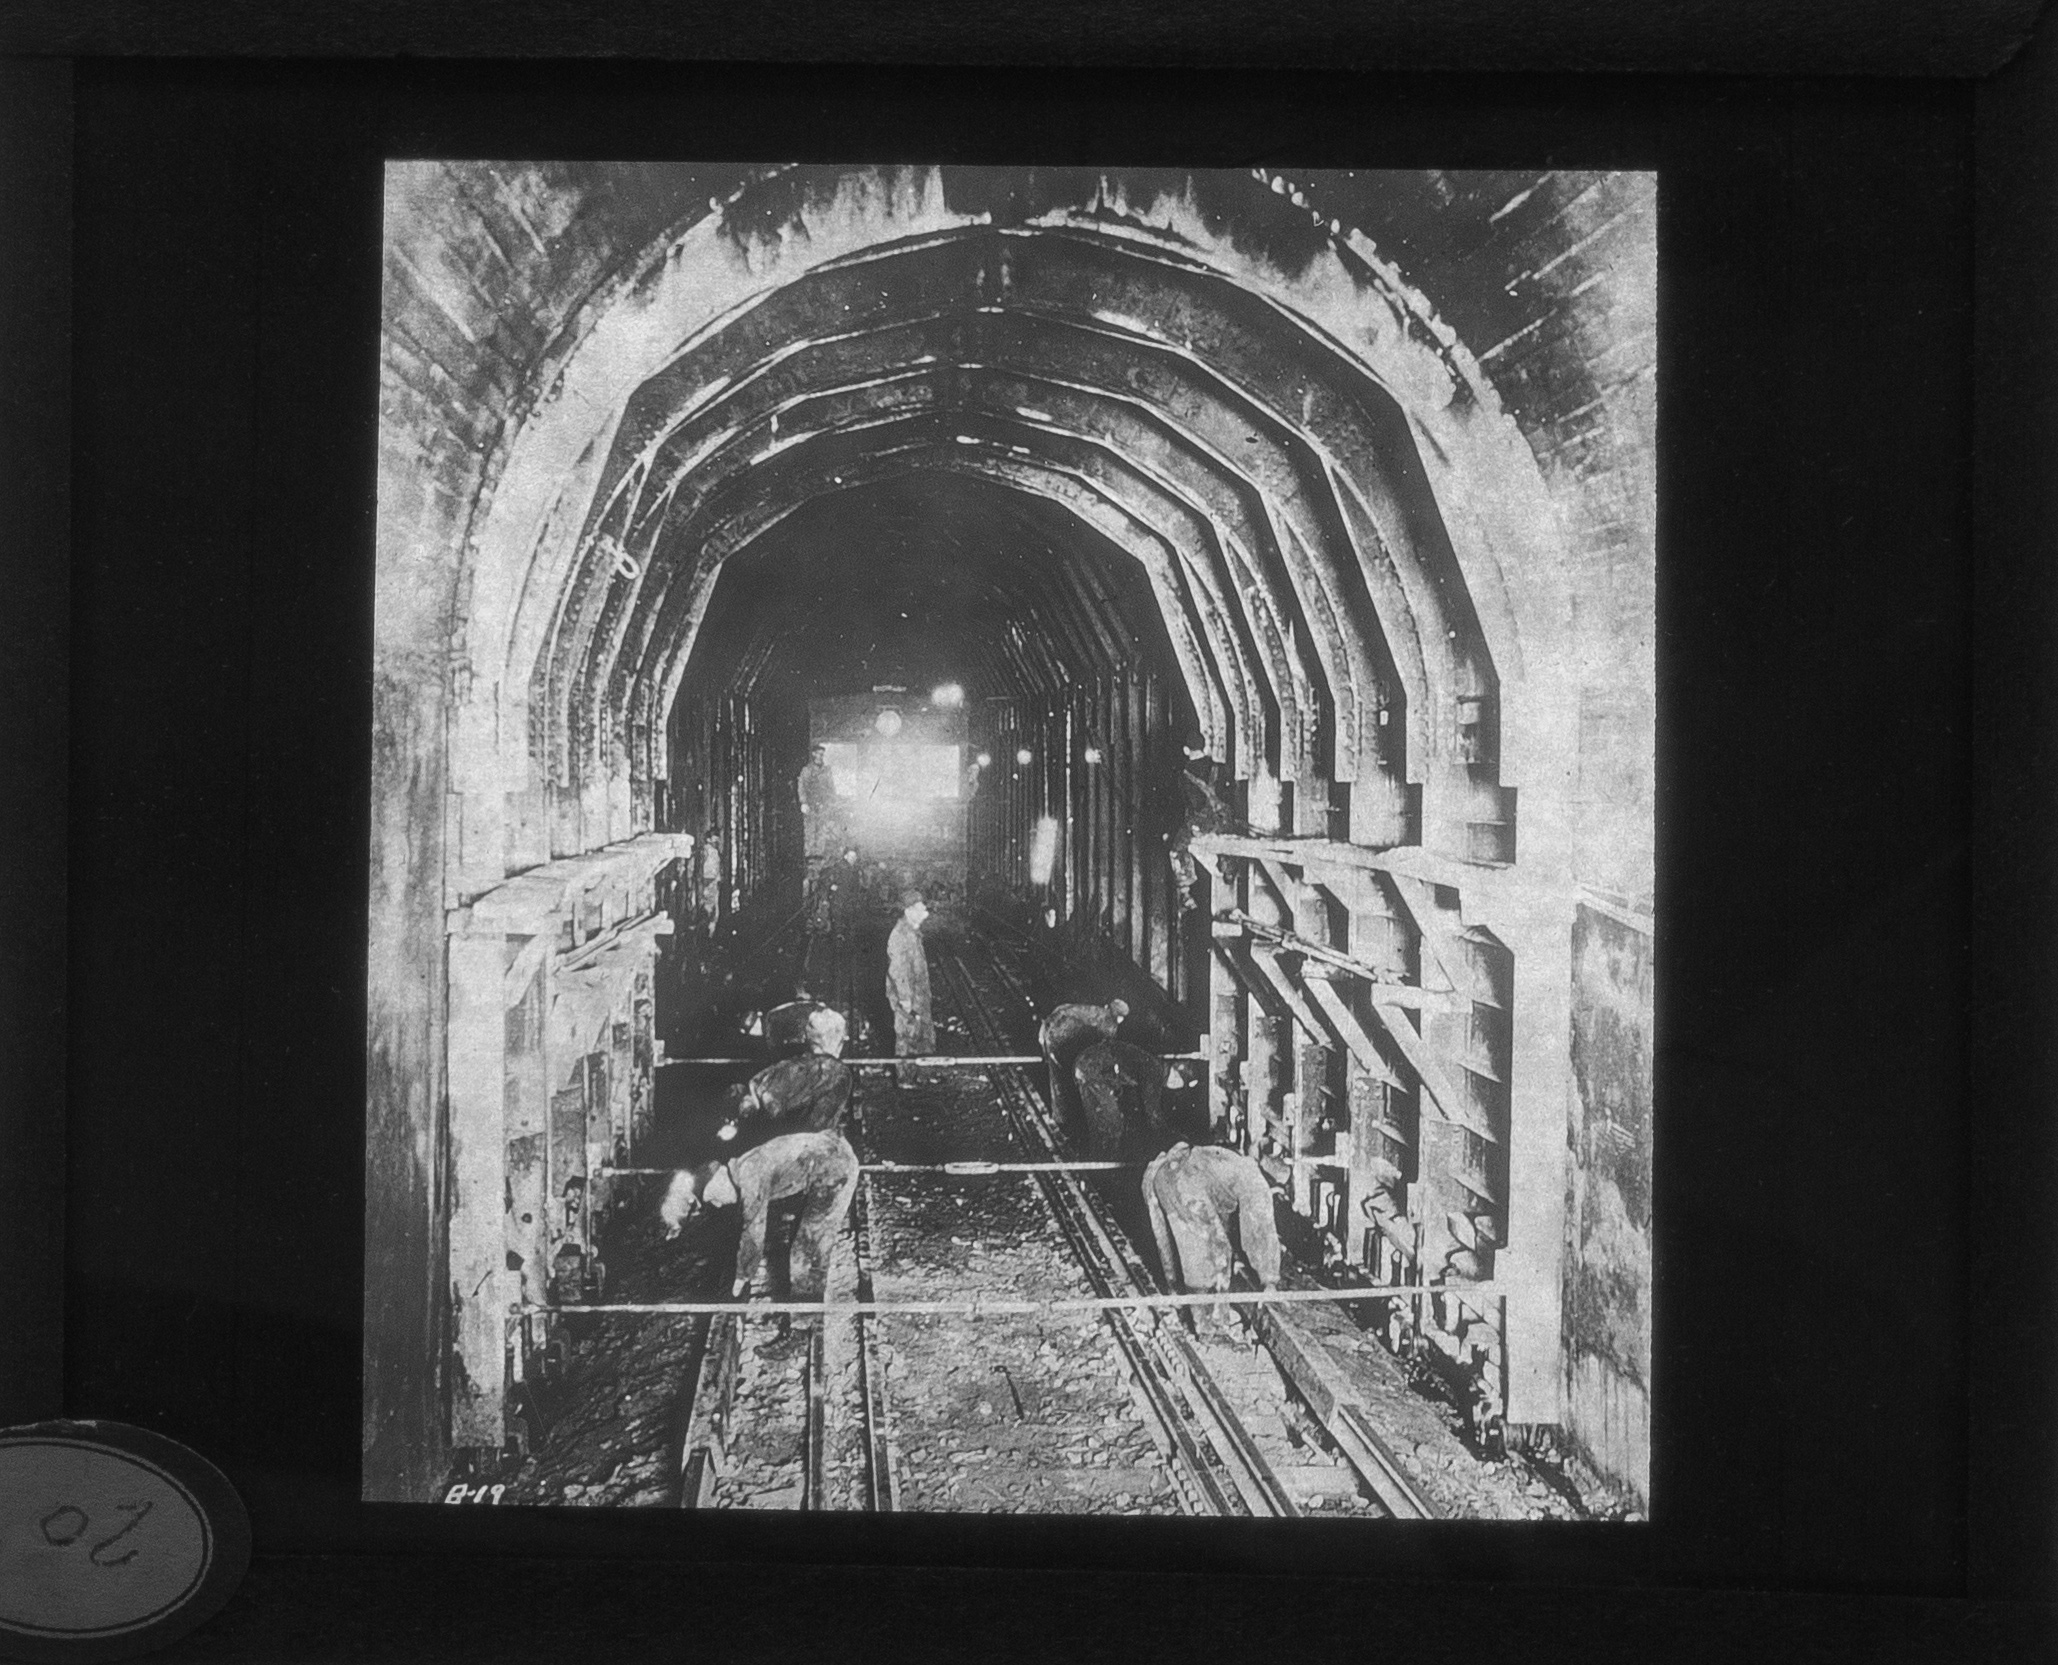 minnehaha tunnel, glass plate negative, city archives